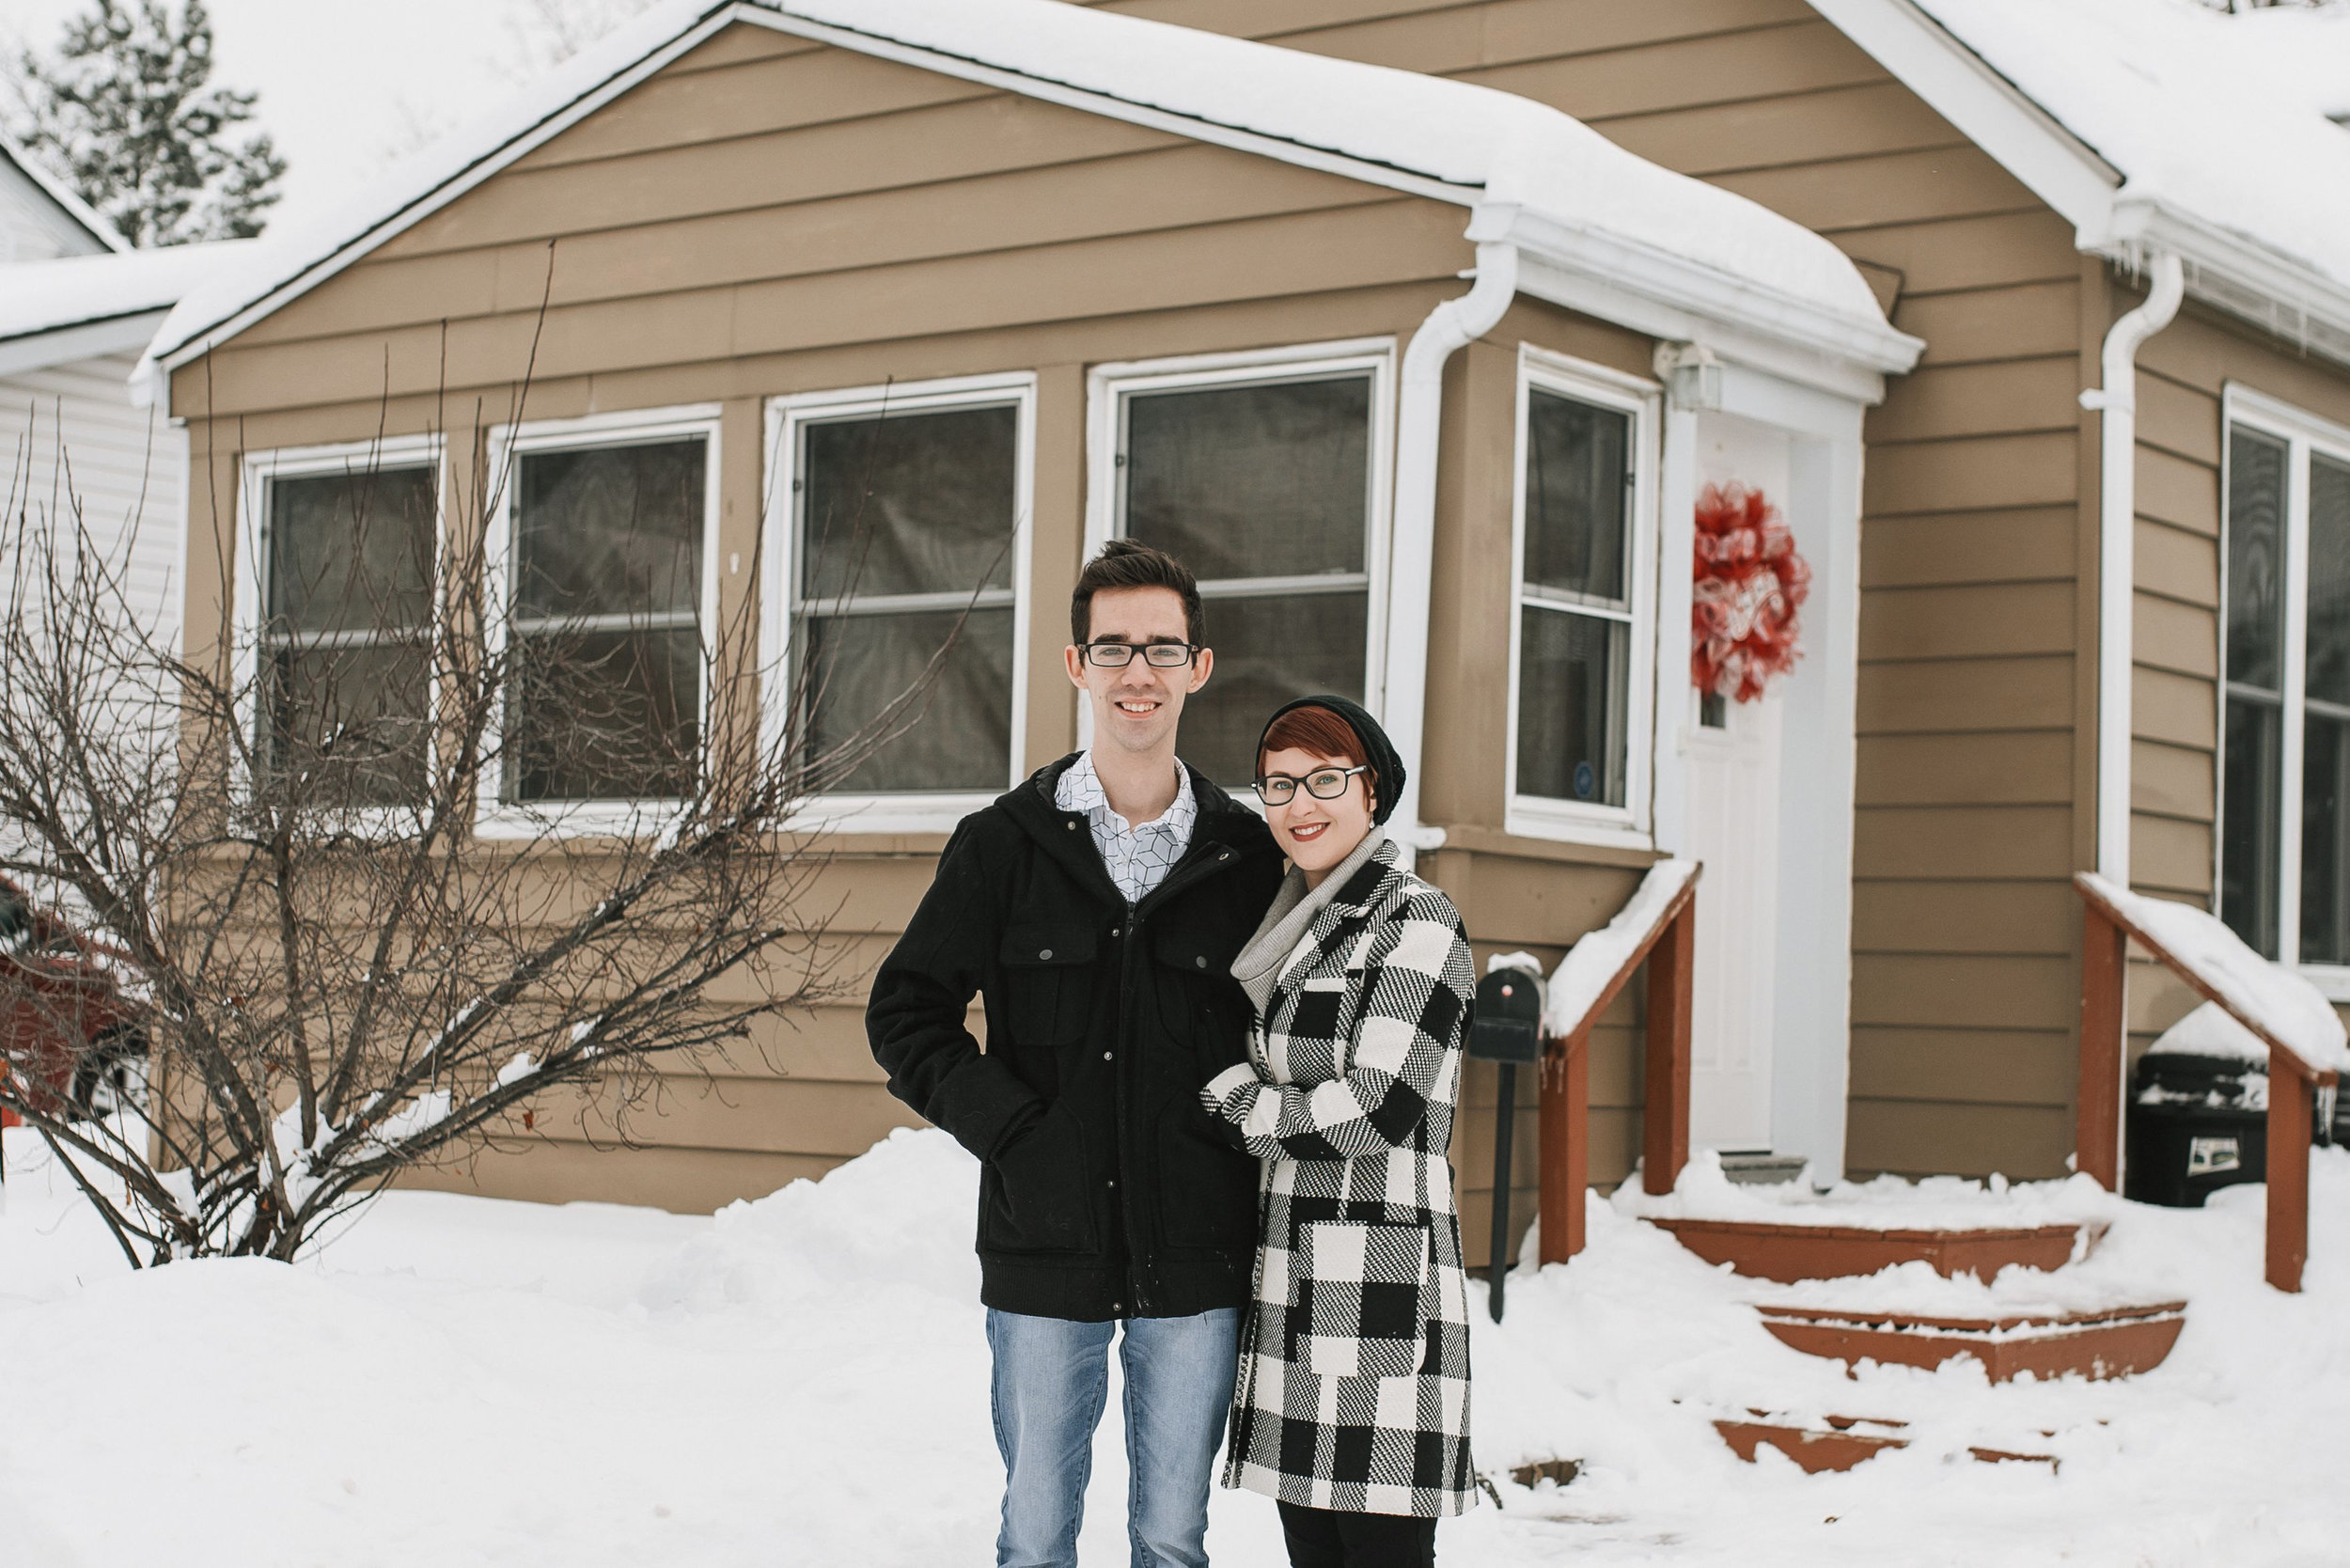 Adam-Emily - www.livelycreativeco.com - NewHome 2018-1 - without numbers.jpg